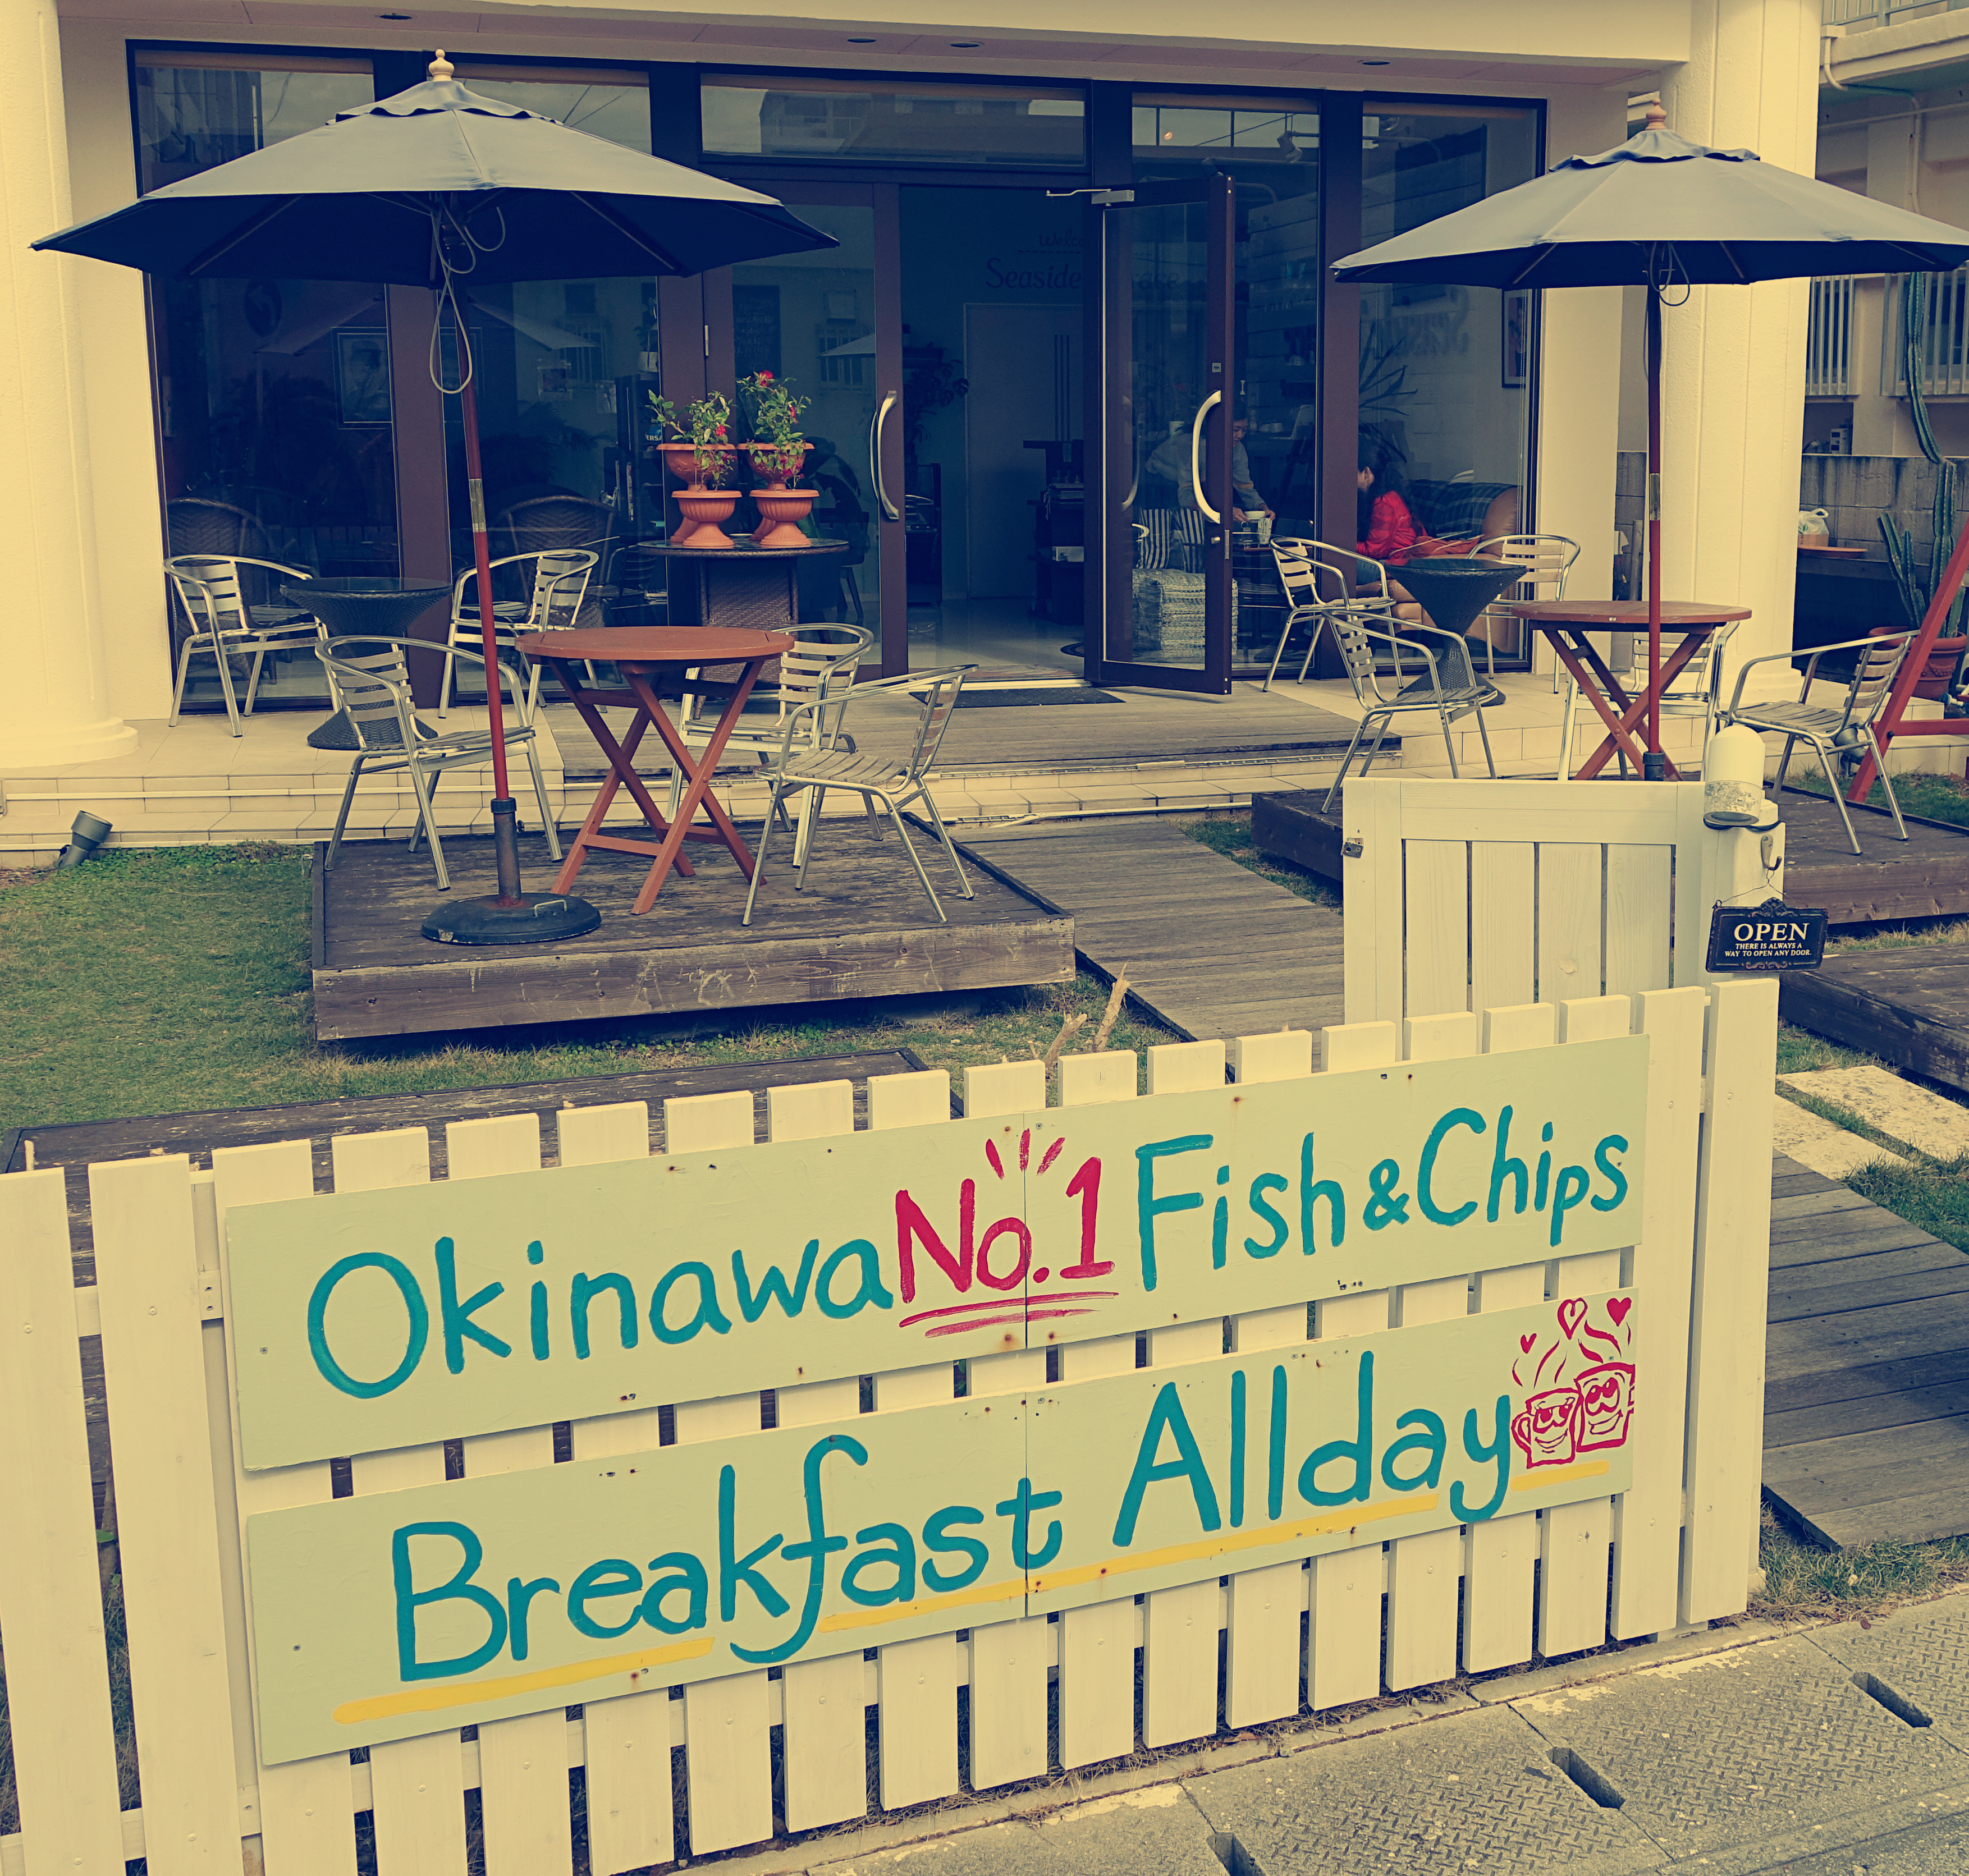 Okinawa eats seaside terrace far east fling for Terrace fish and chips